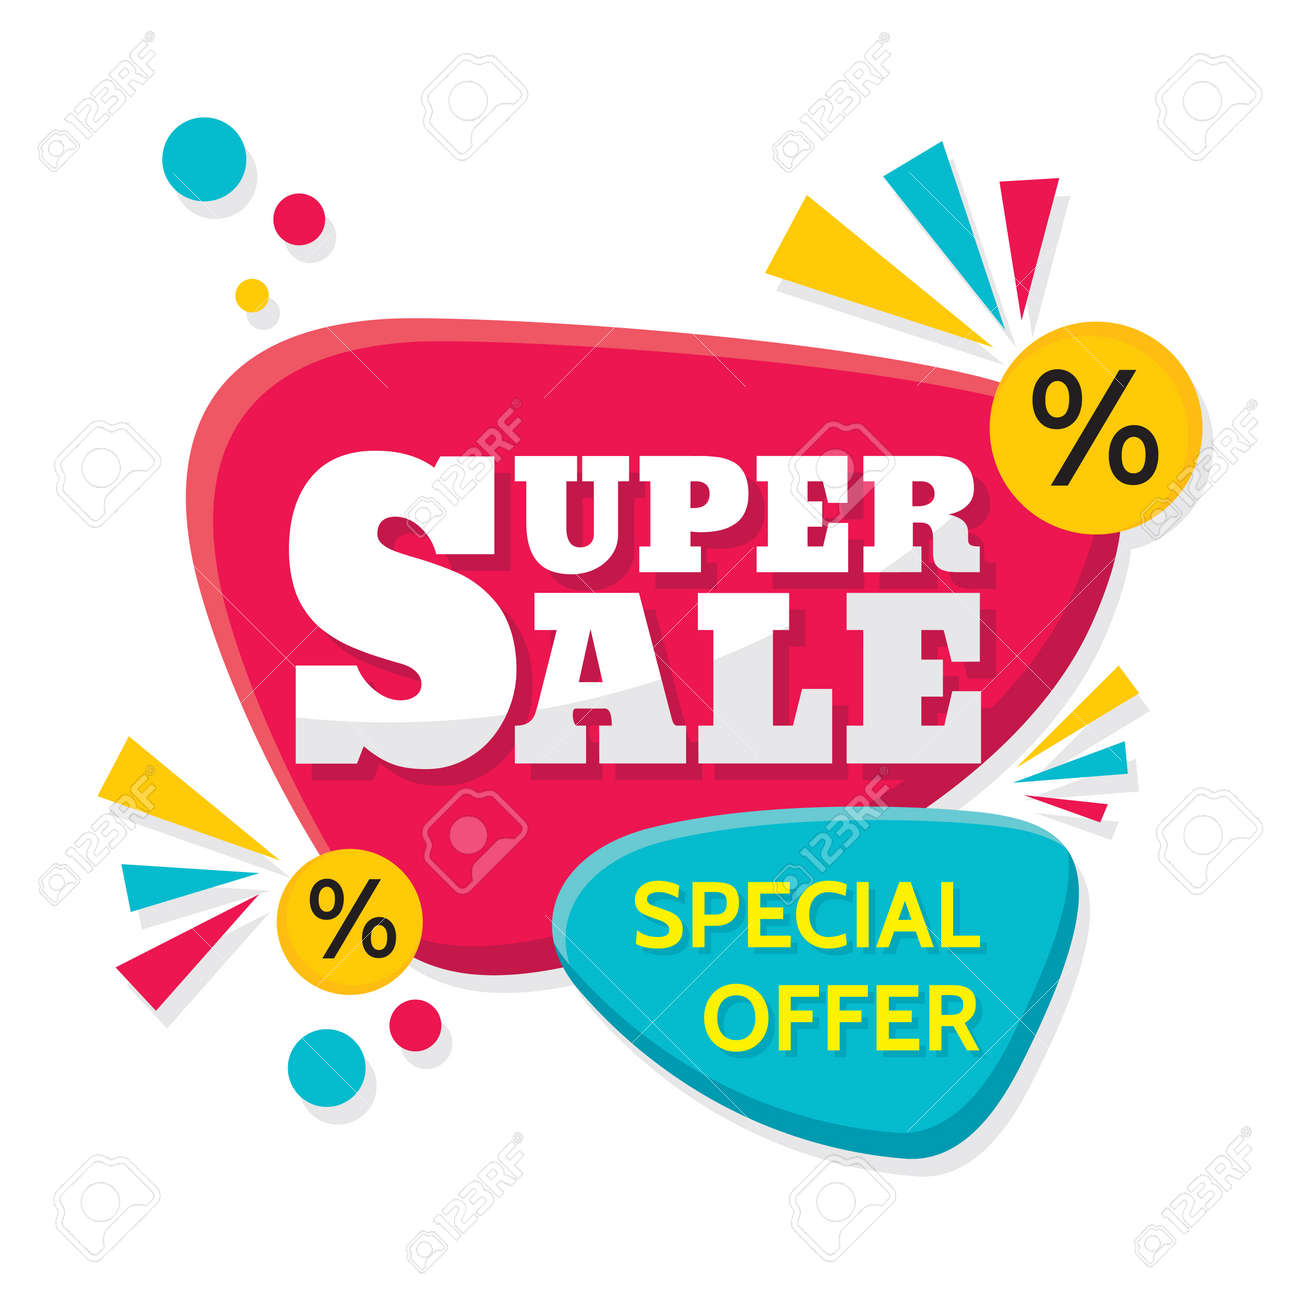 Super Sale Vector Creative Banner Illustration Abstract Concept